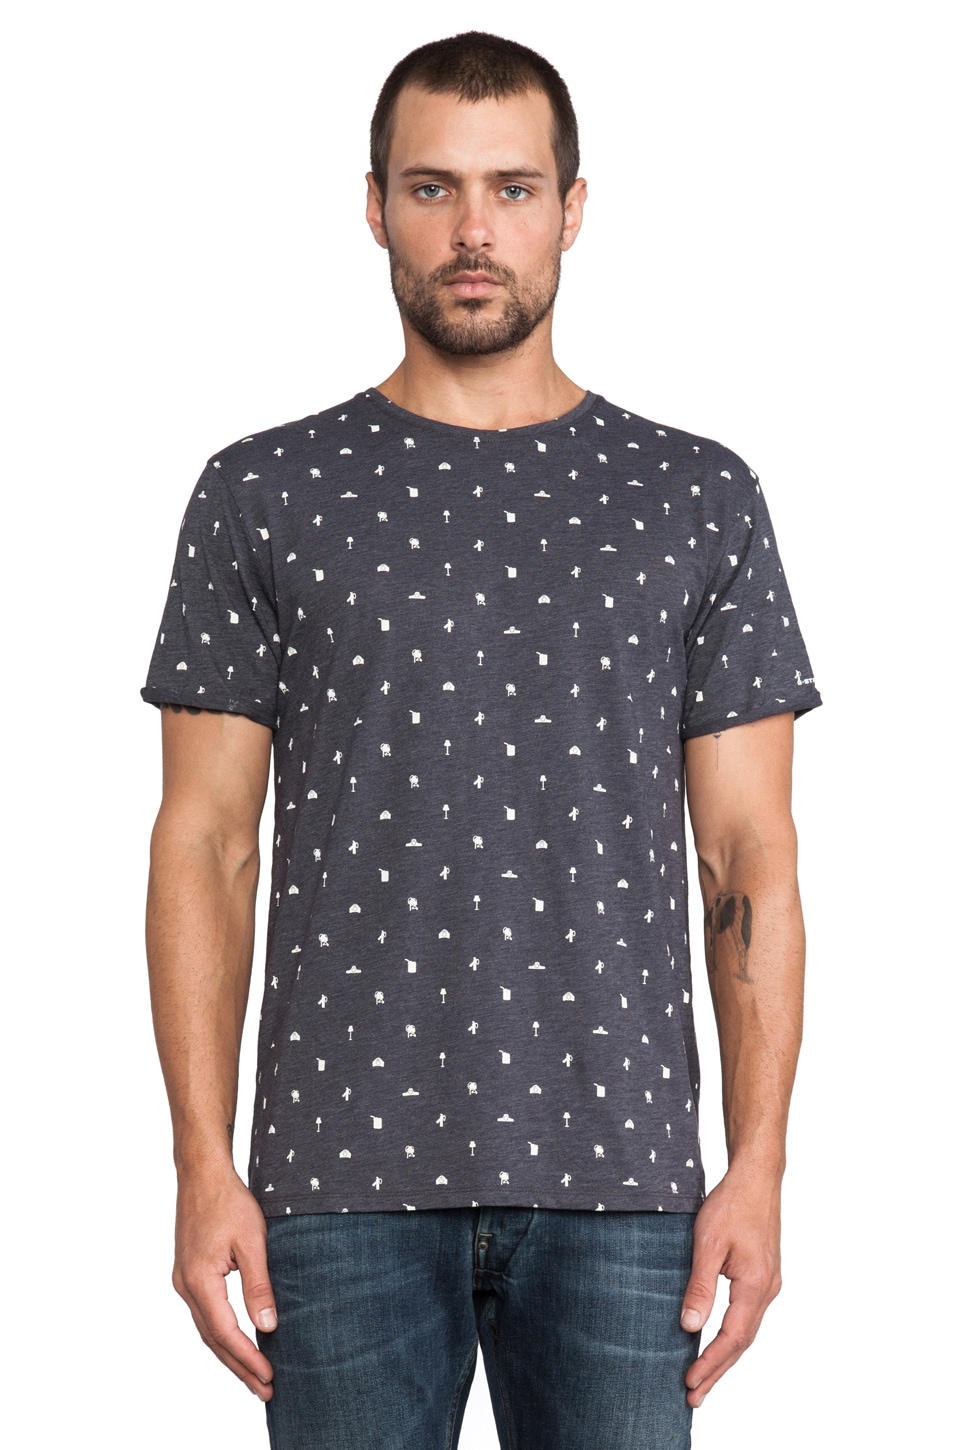 G-Star Random Coated Allover Tee in Petrol